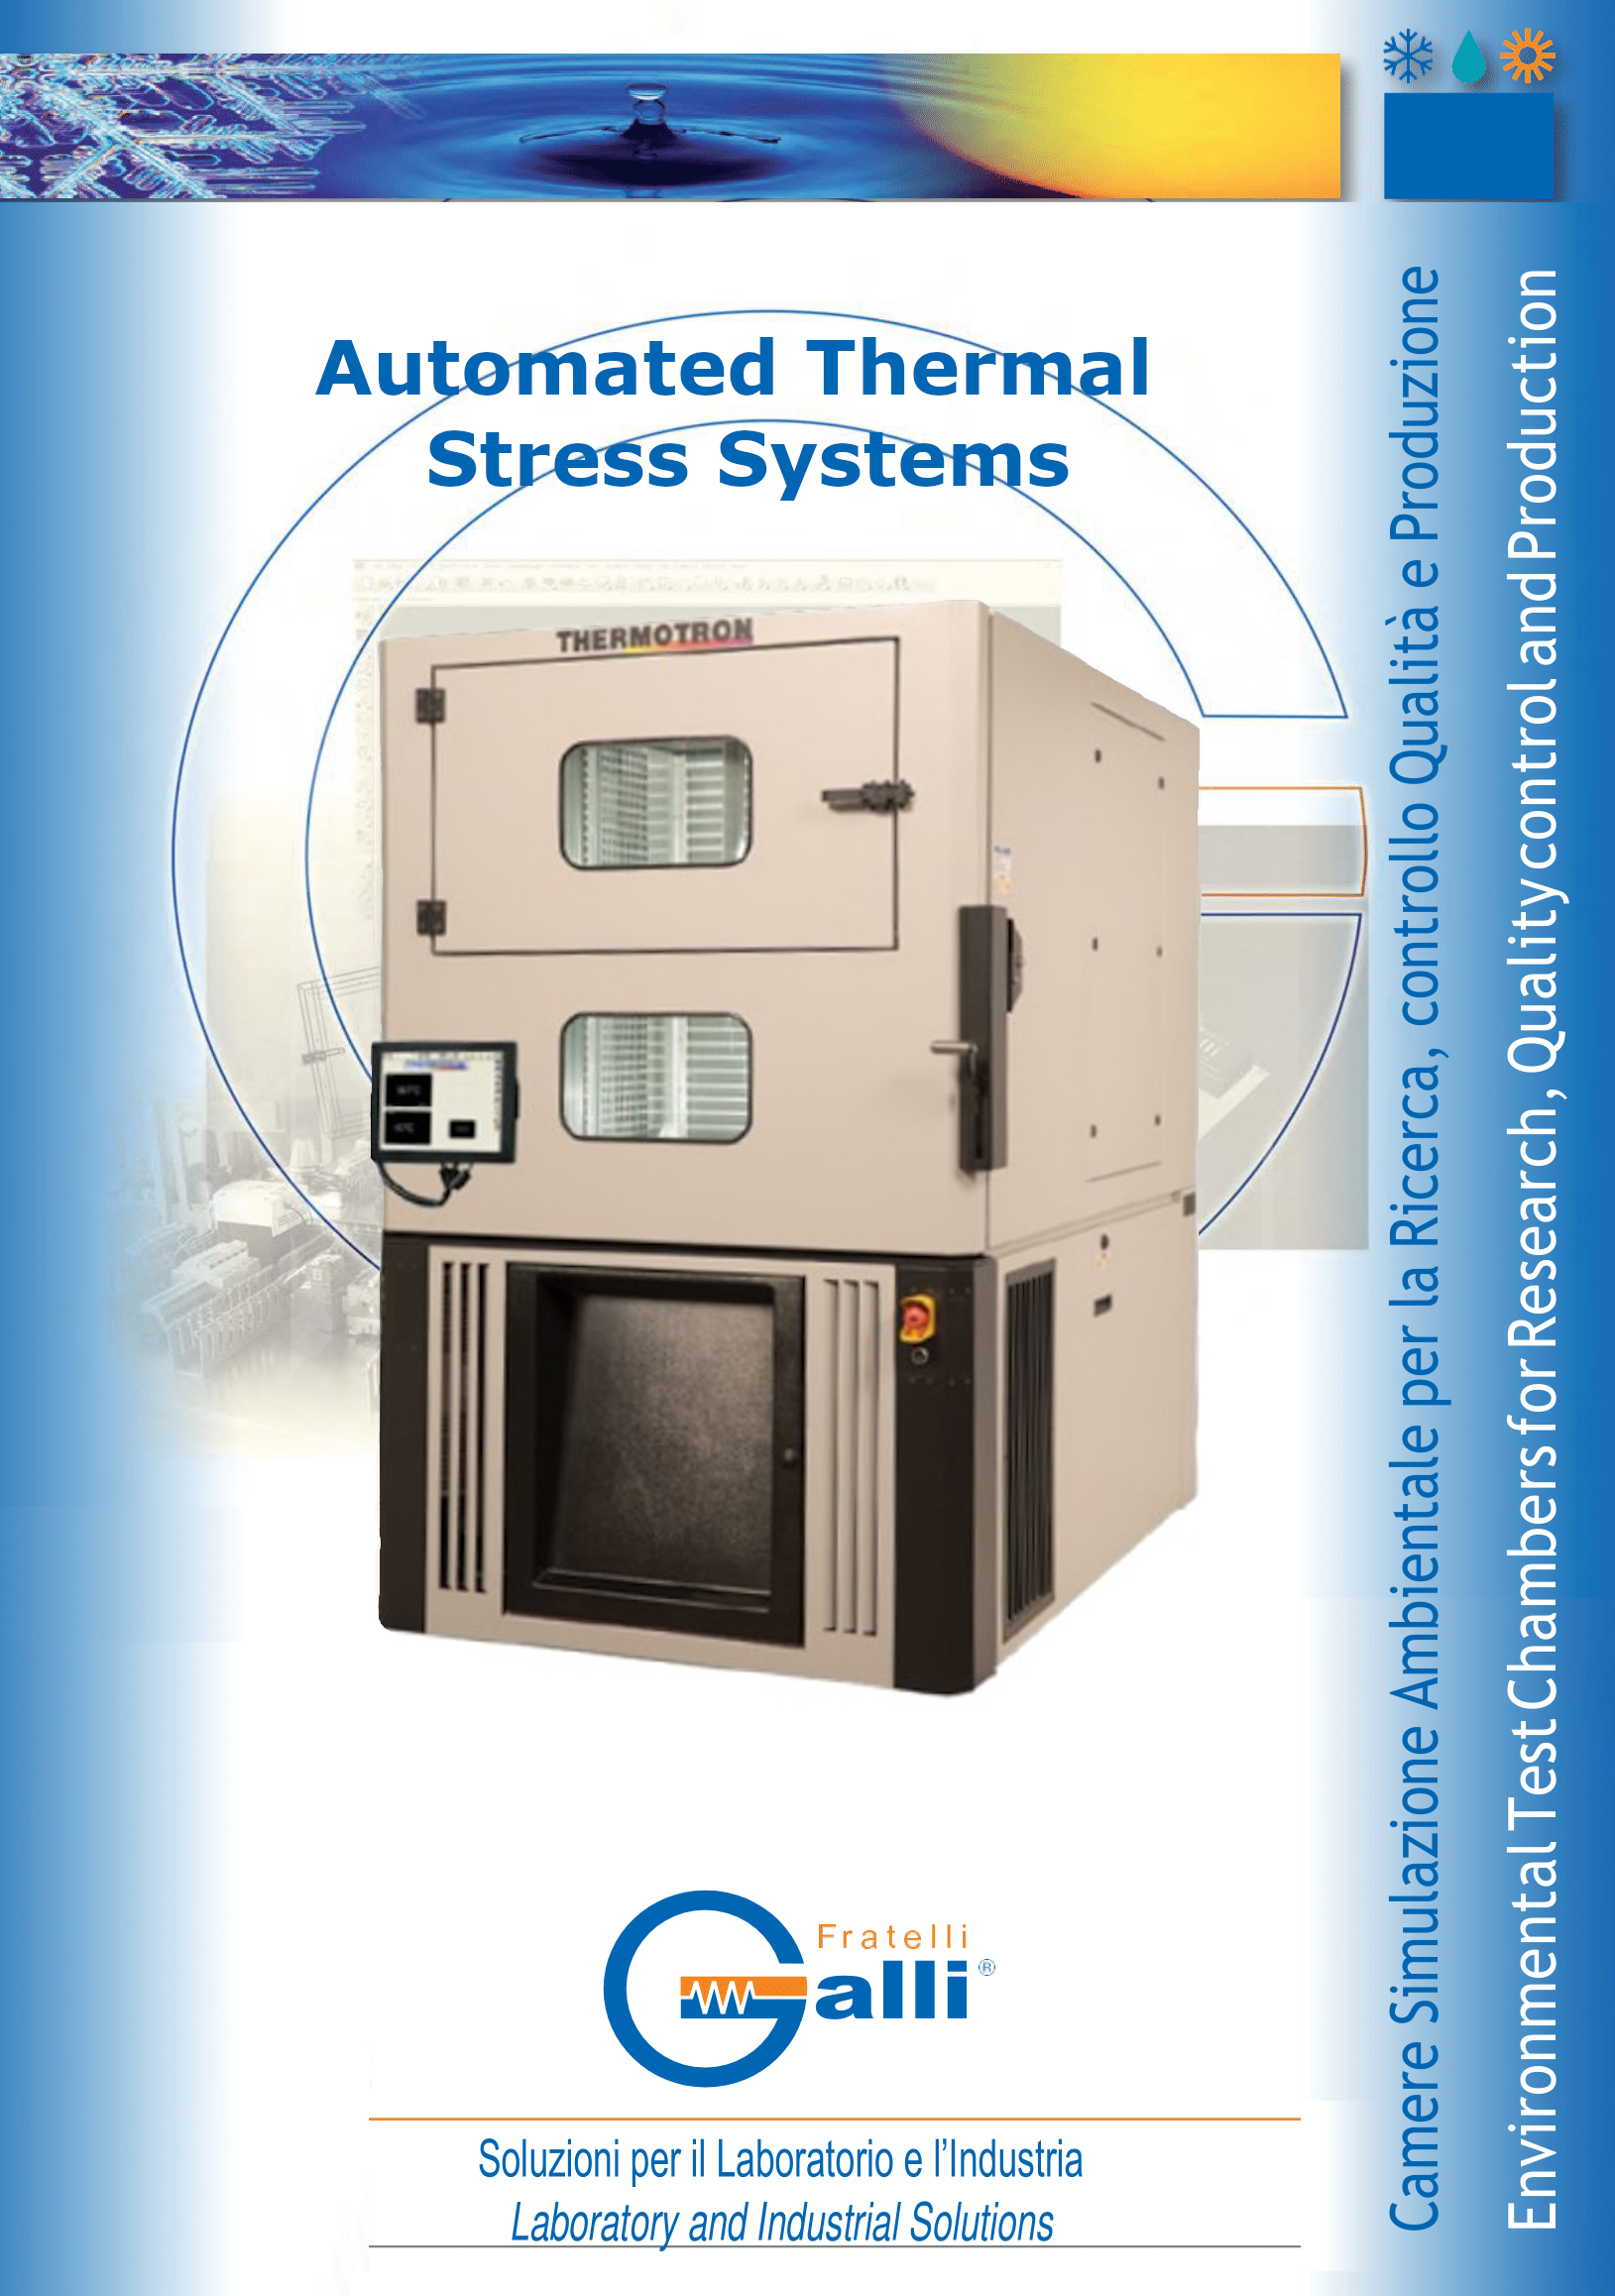 Galli-Automated Thermal Stress System